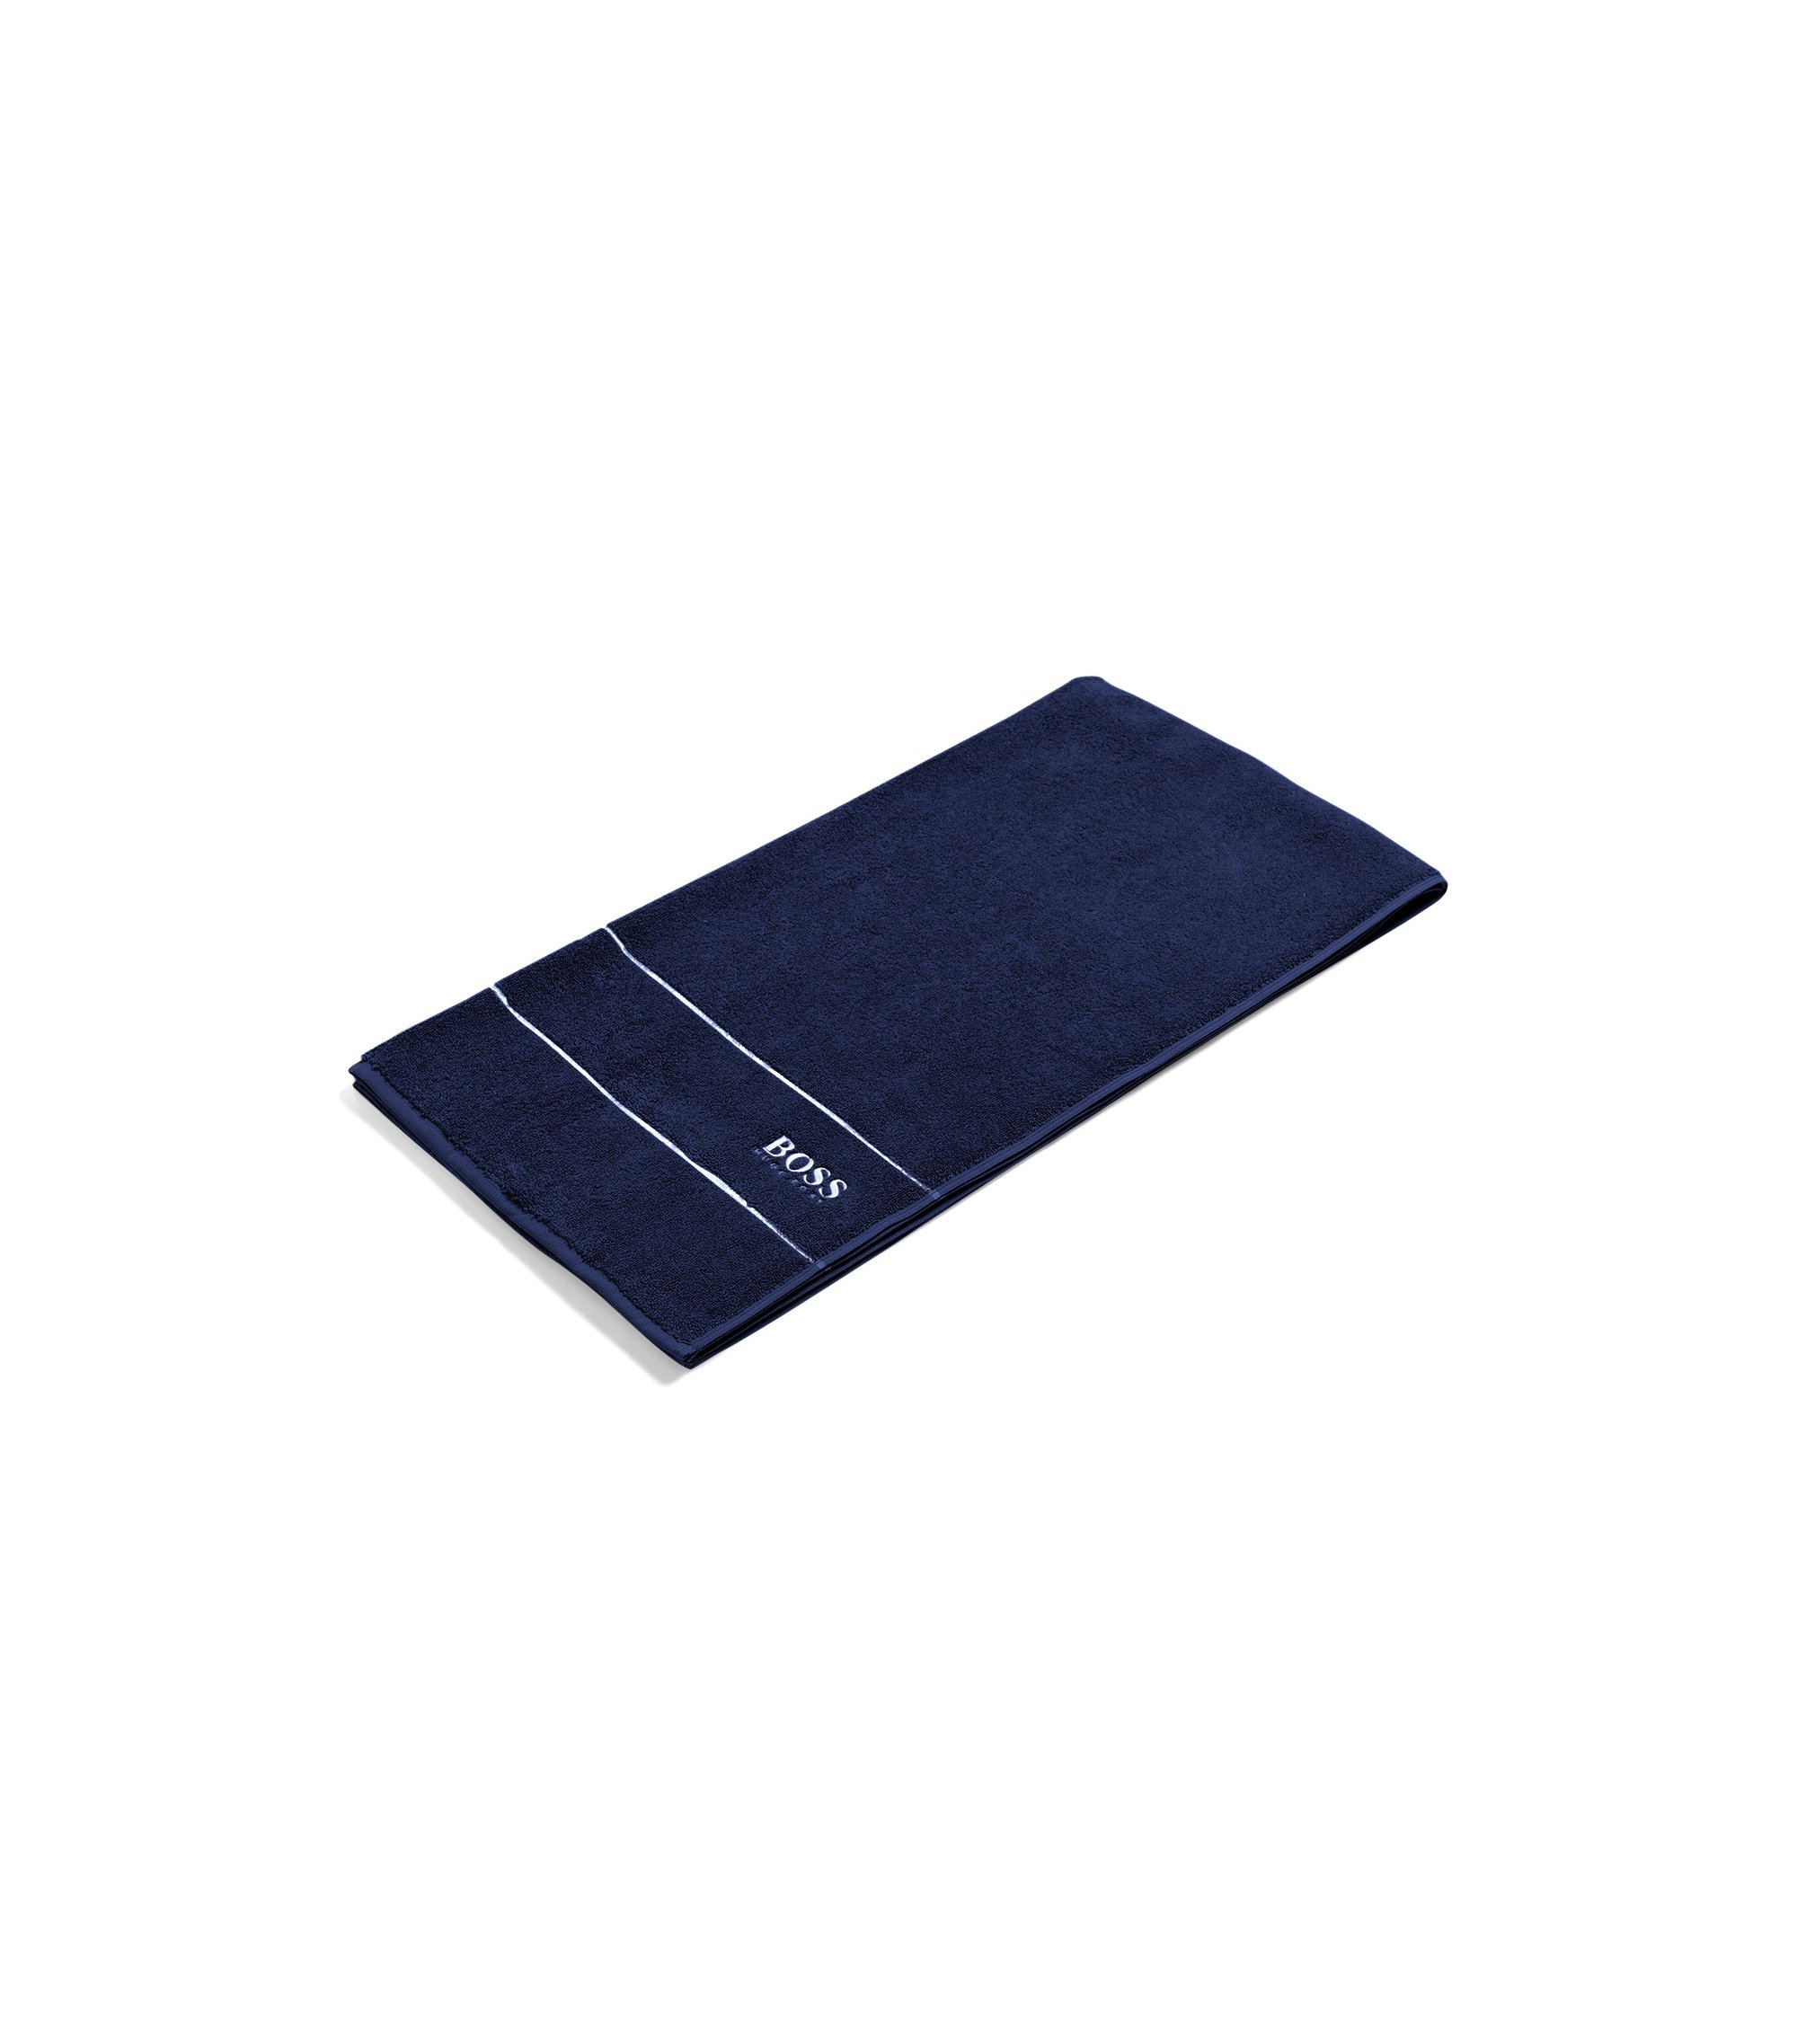 Finest Egyptian cotton bath towel with logo border, Dark Blue